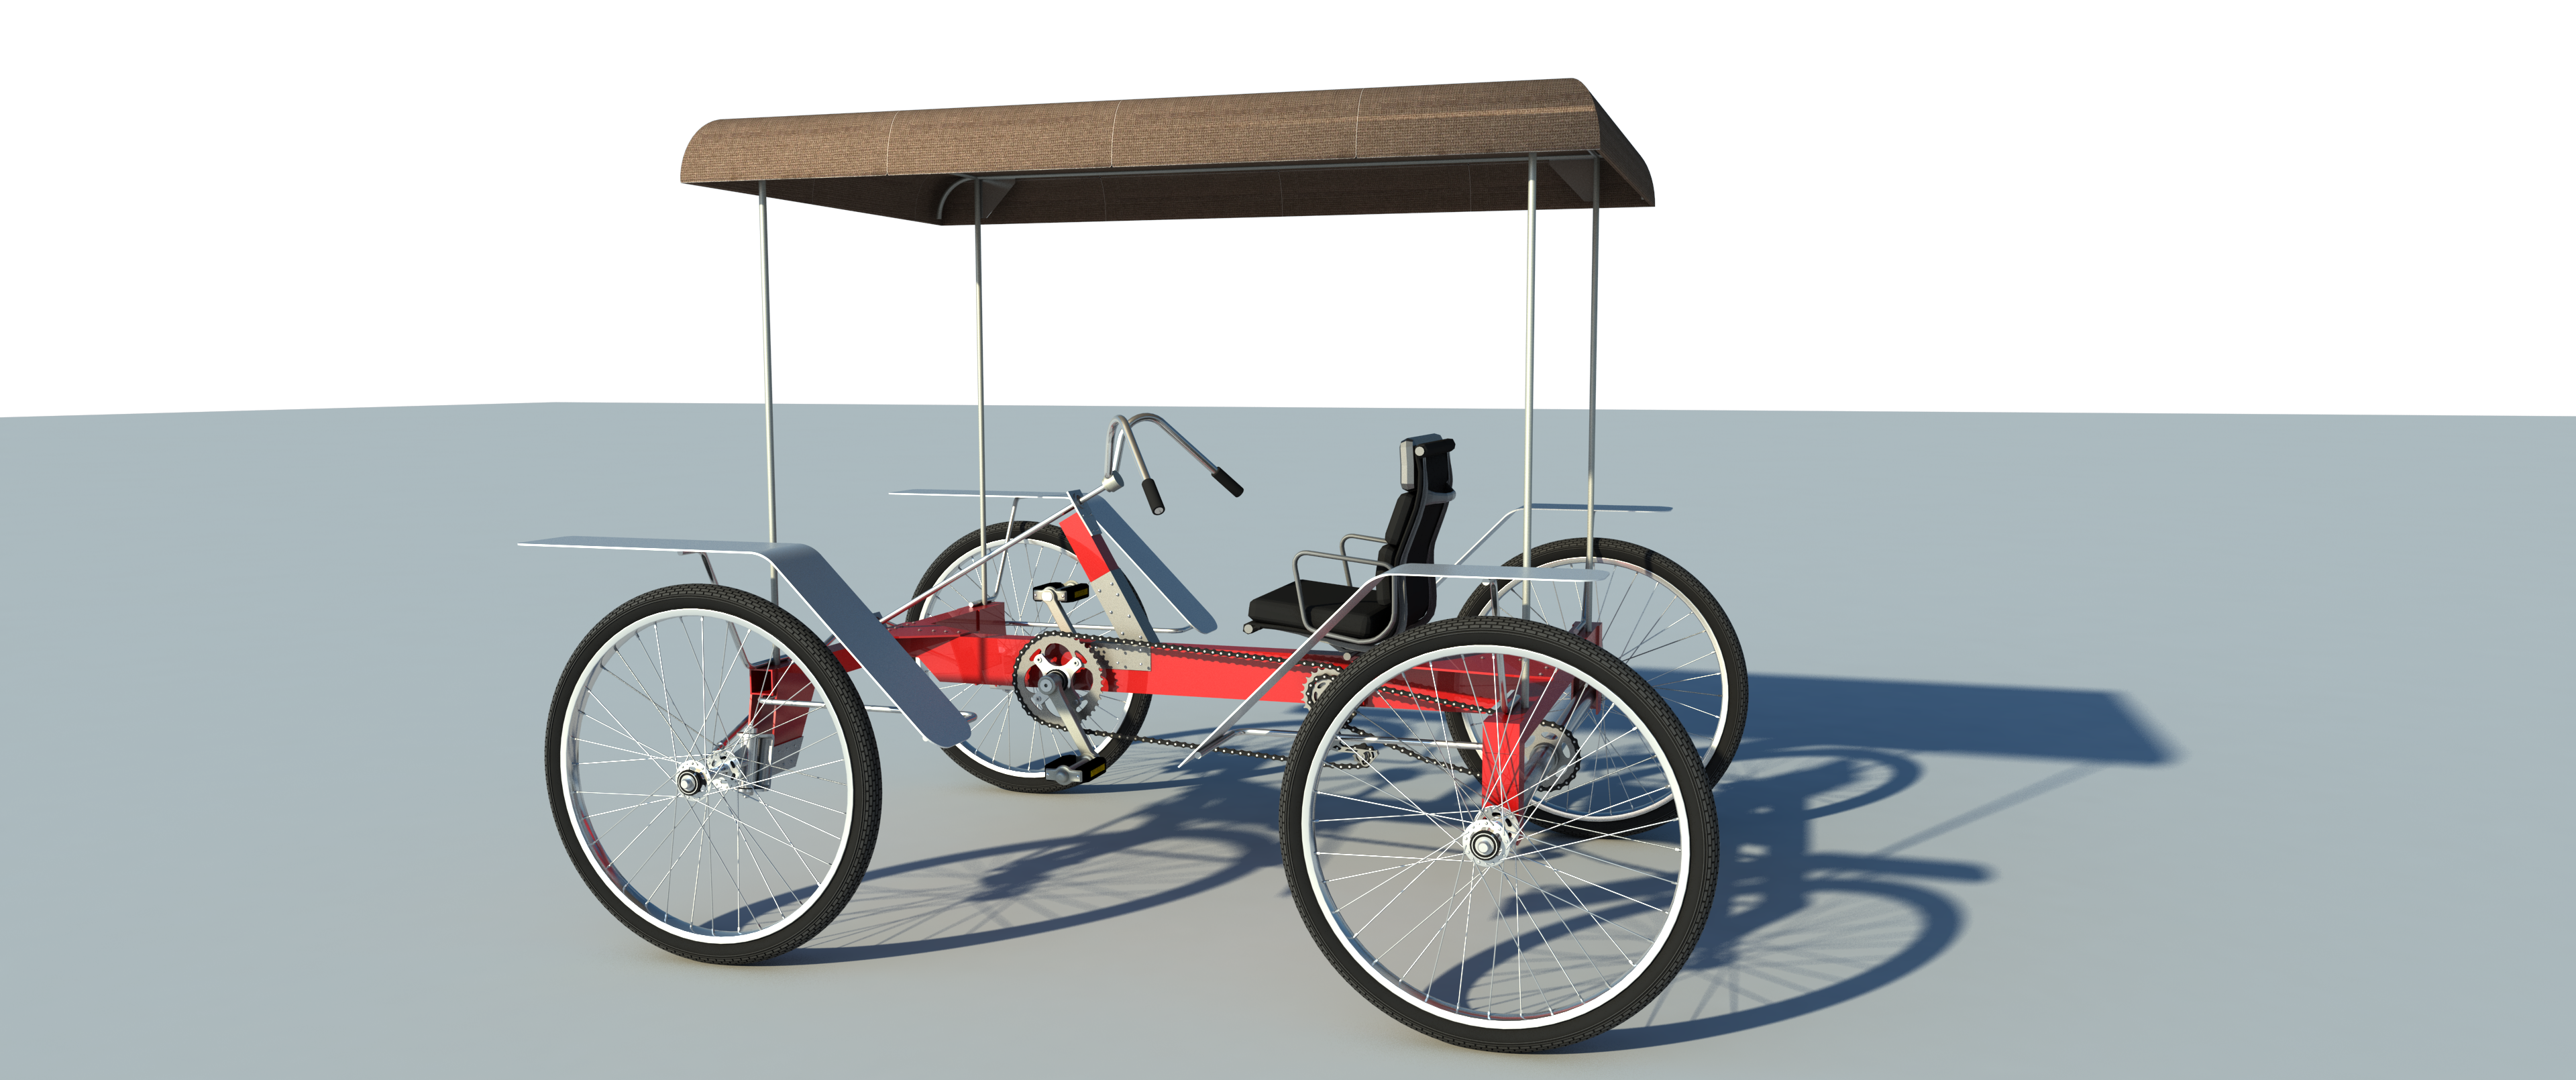 Build Your Own 4 Wheel Pedal Bike Car Diy Plans Pedicab